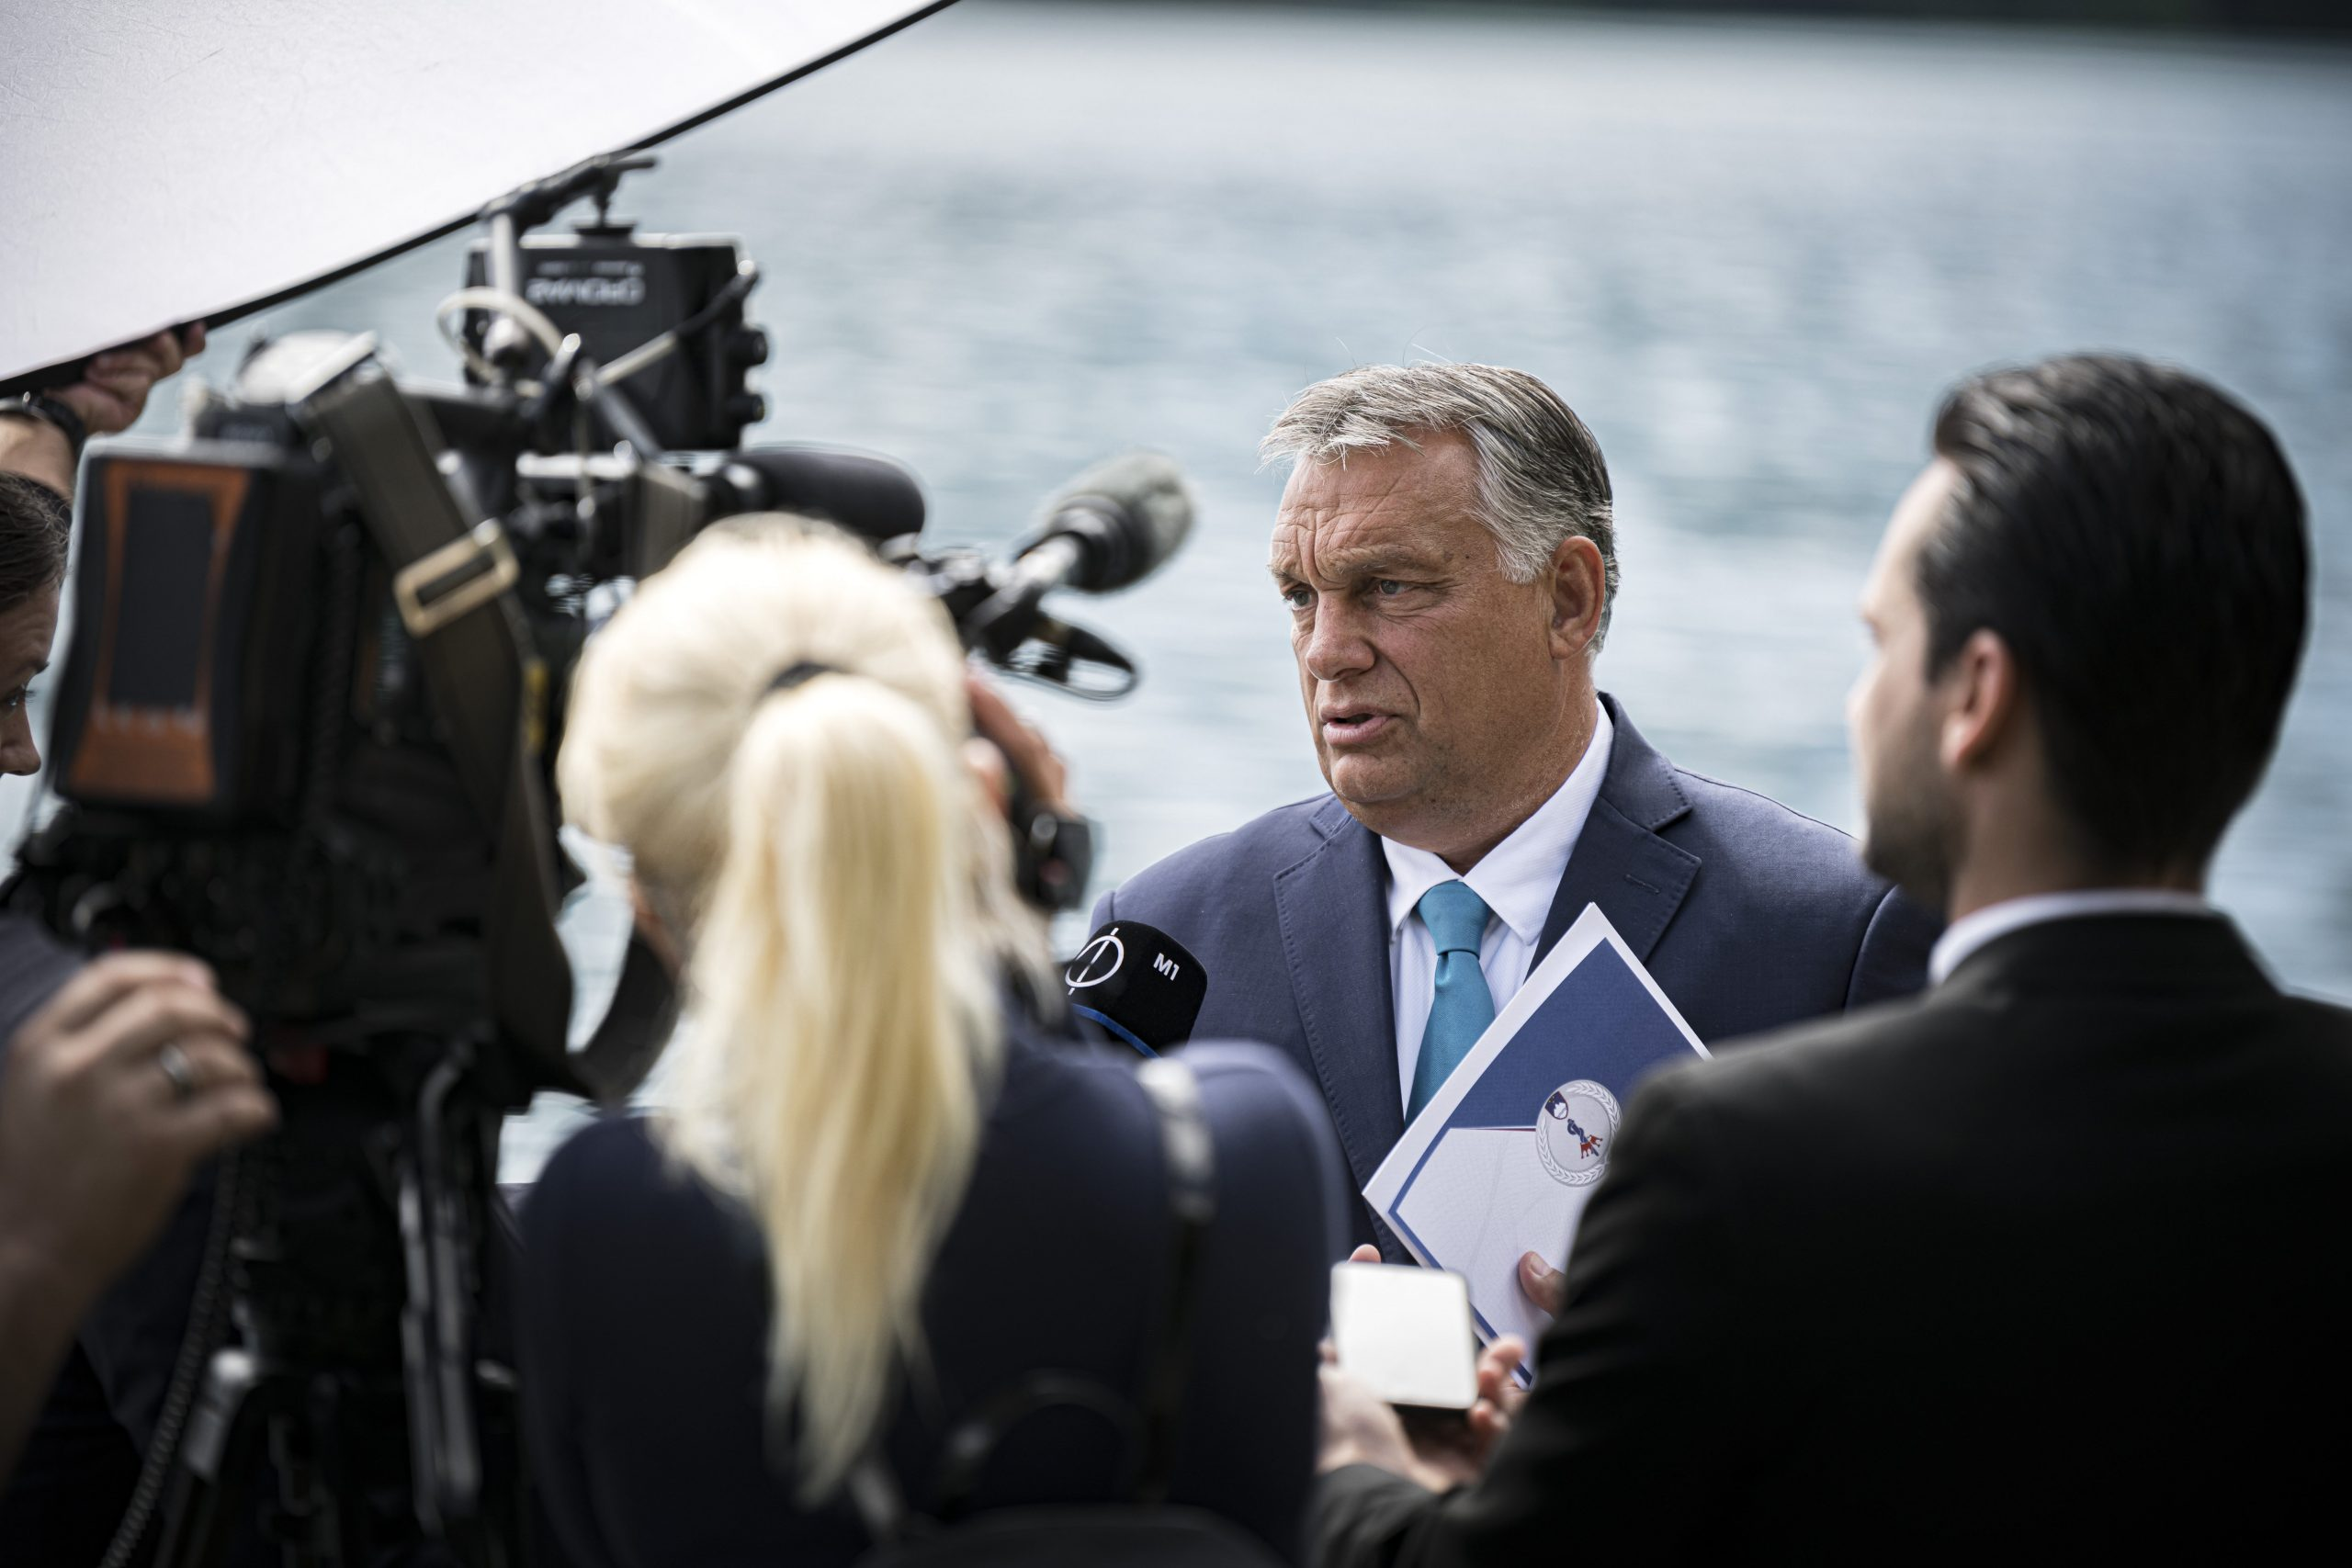 Orbán Announces New Restriction, Covid Test Price Regulated